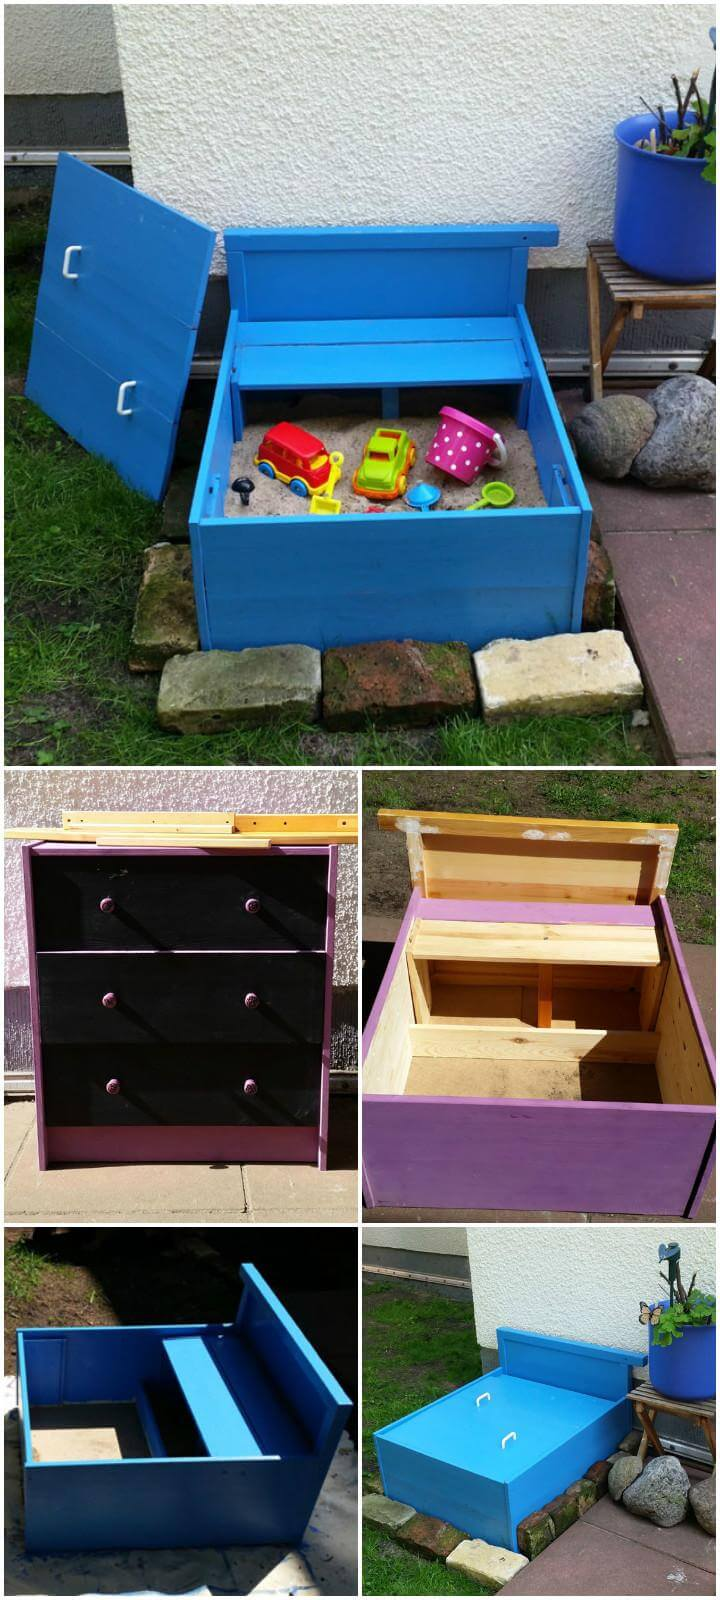 DIY Mini Sandbox Made of an Old Dresser